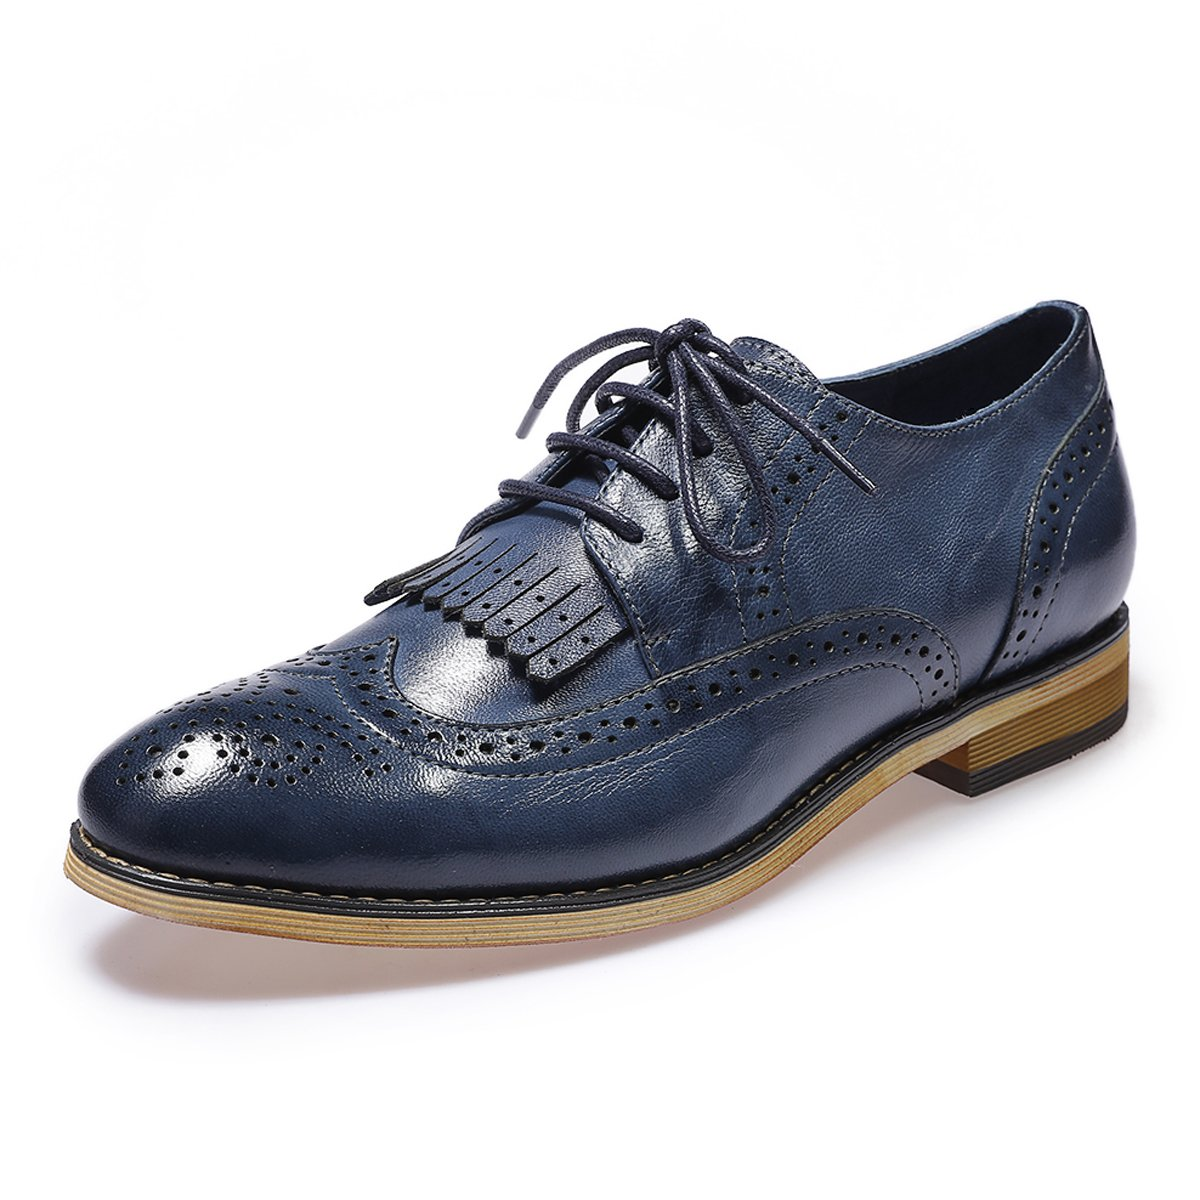 bf98cc840a Mona Flying Women's Leather Perforated Lace-up Oxfords Shoes for Women  Wingtip Multicolor Brougue Shoes: Amazon.ca: Shoes & Handbags